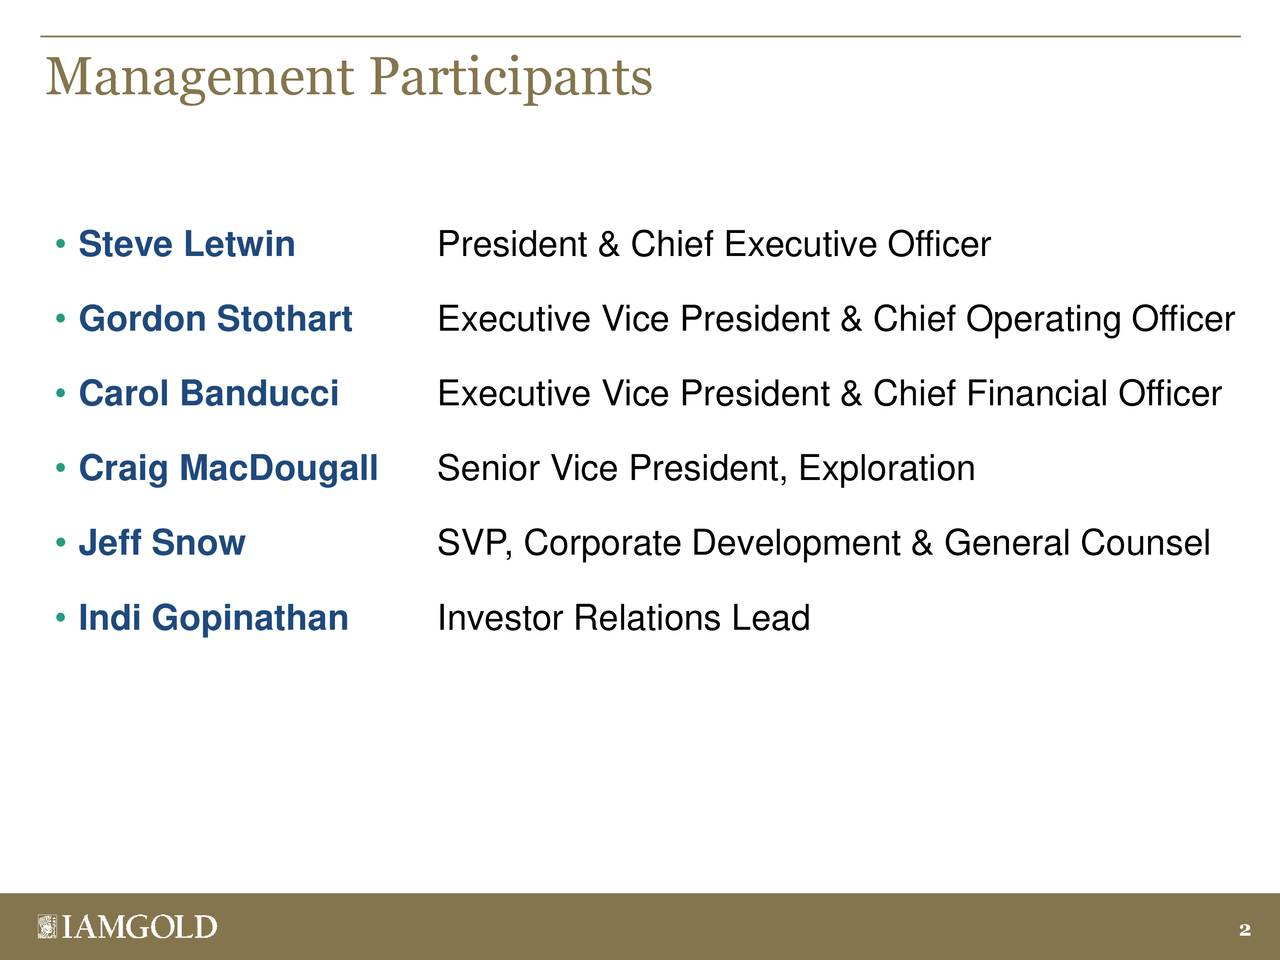 • Steve Letwin President & Chief Executive Officer • Gordon Stothart Executive Vice President & Chief Operating Officer • Carol Banducci Executive Vice President & Chief Financial Officer • Craig MacDougall Senior Vice President, Exploration • Jeff Snow SVP, Corporate Development & General Counsel • Indi Gopinathan Investor Relations Lead 2